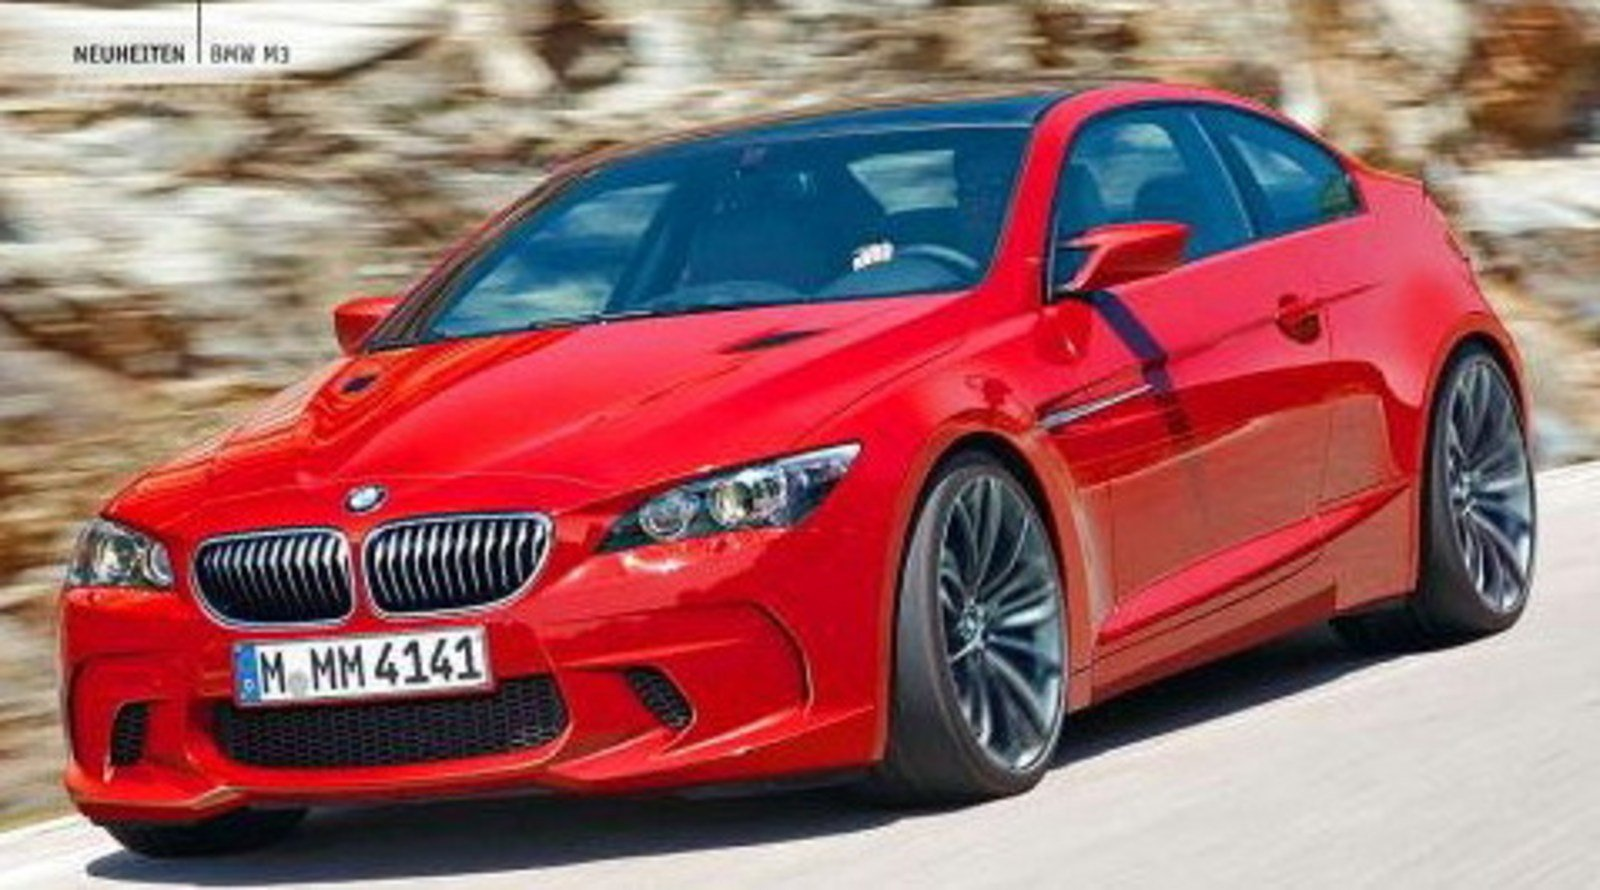 High End Cars >> The Future BMW M3 Will Be Tri-turbo! News - Top Speed